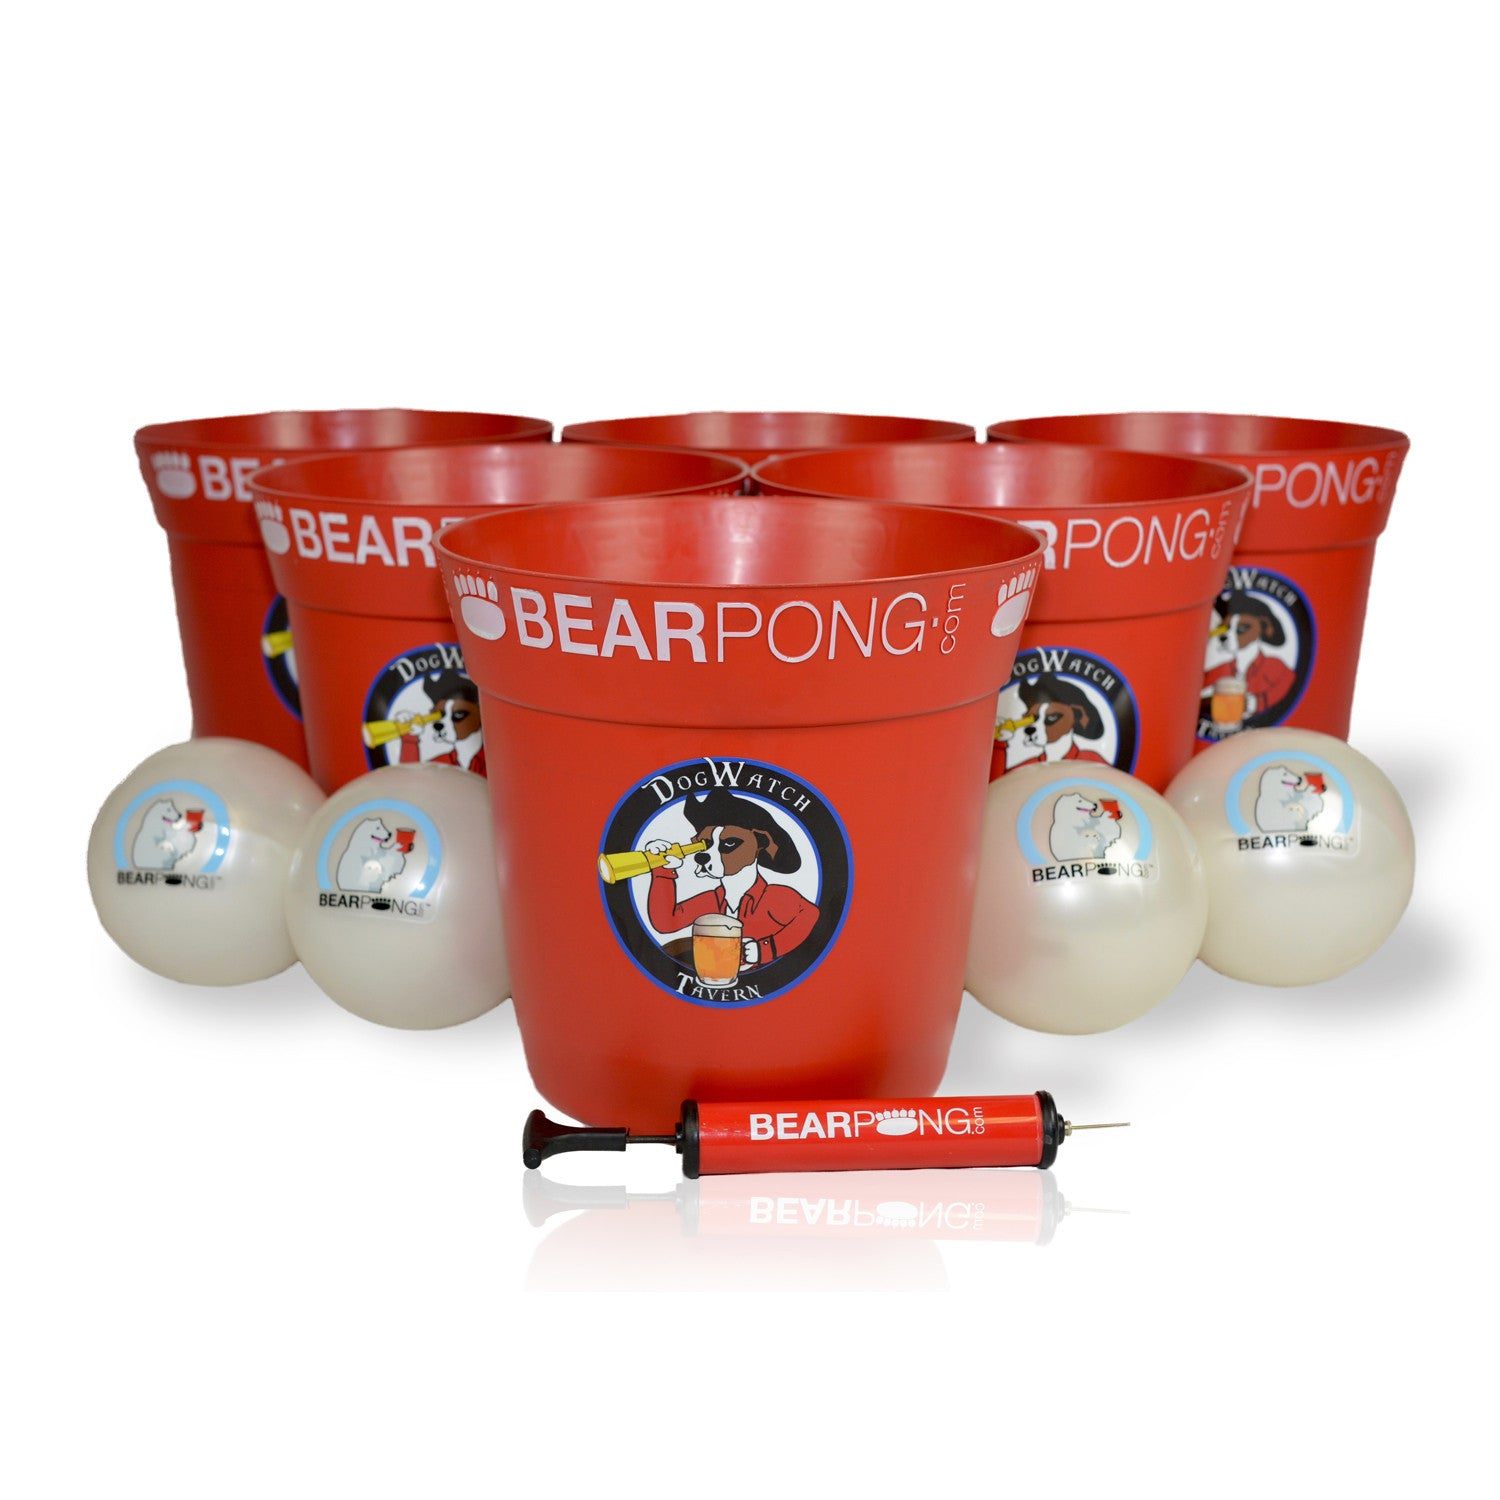 BEARPONG- Customized Giant Beer Pong Game!